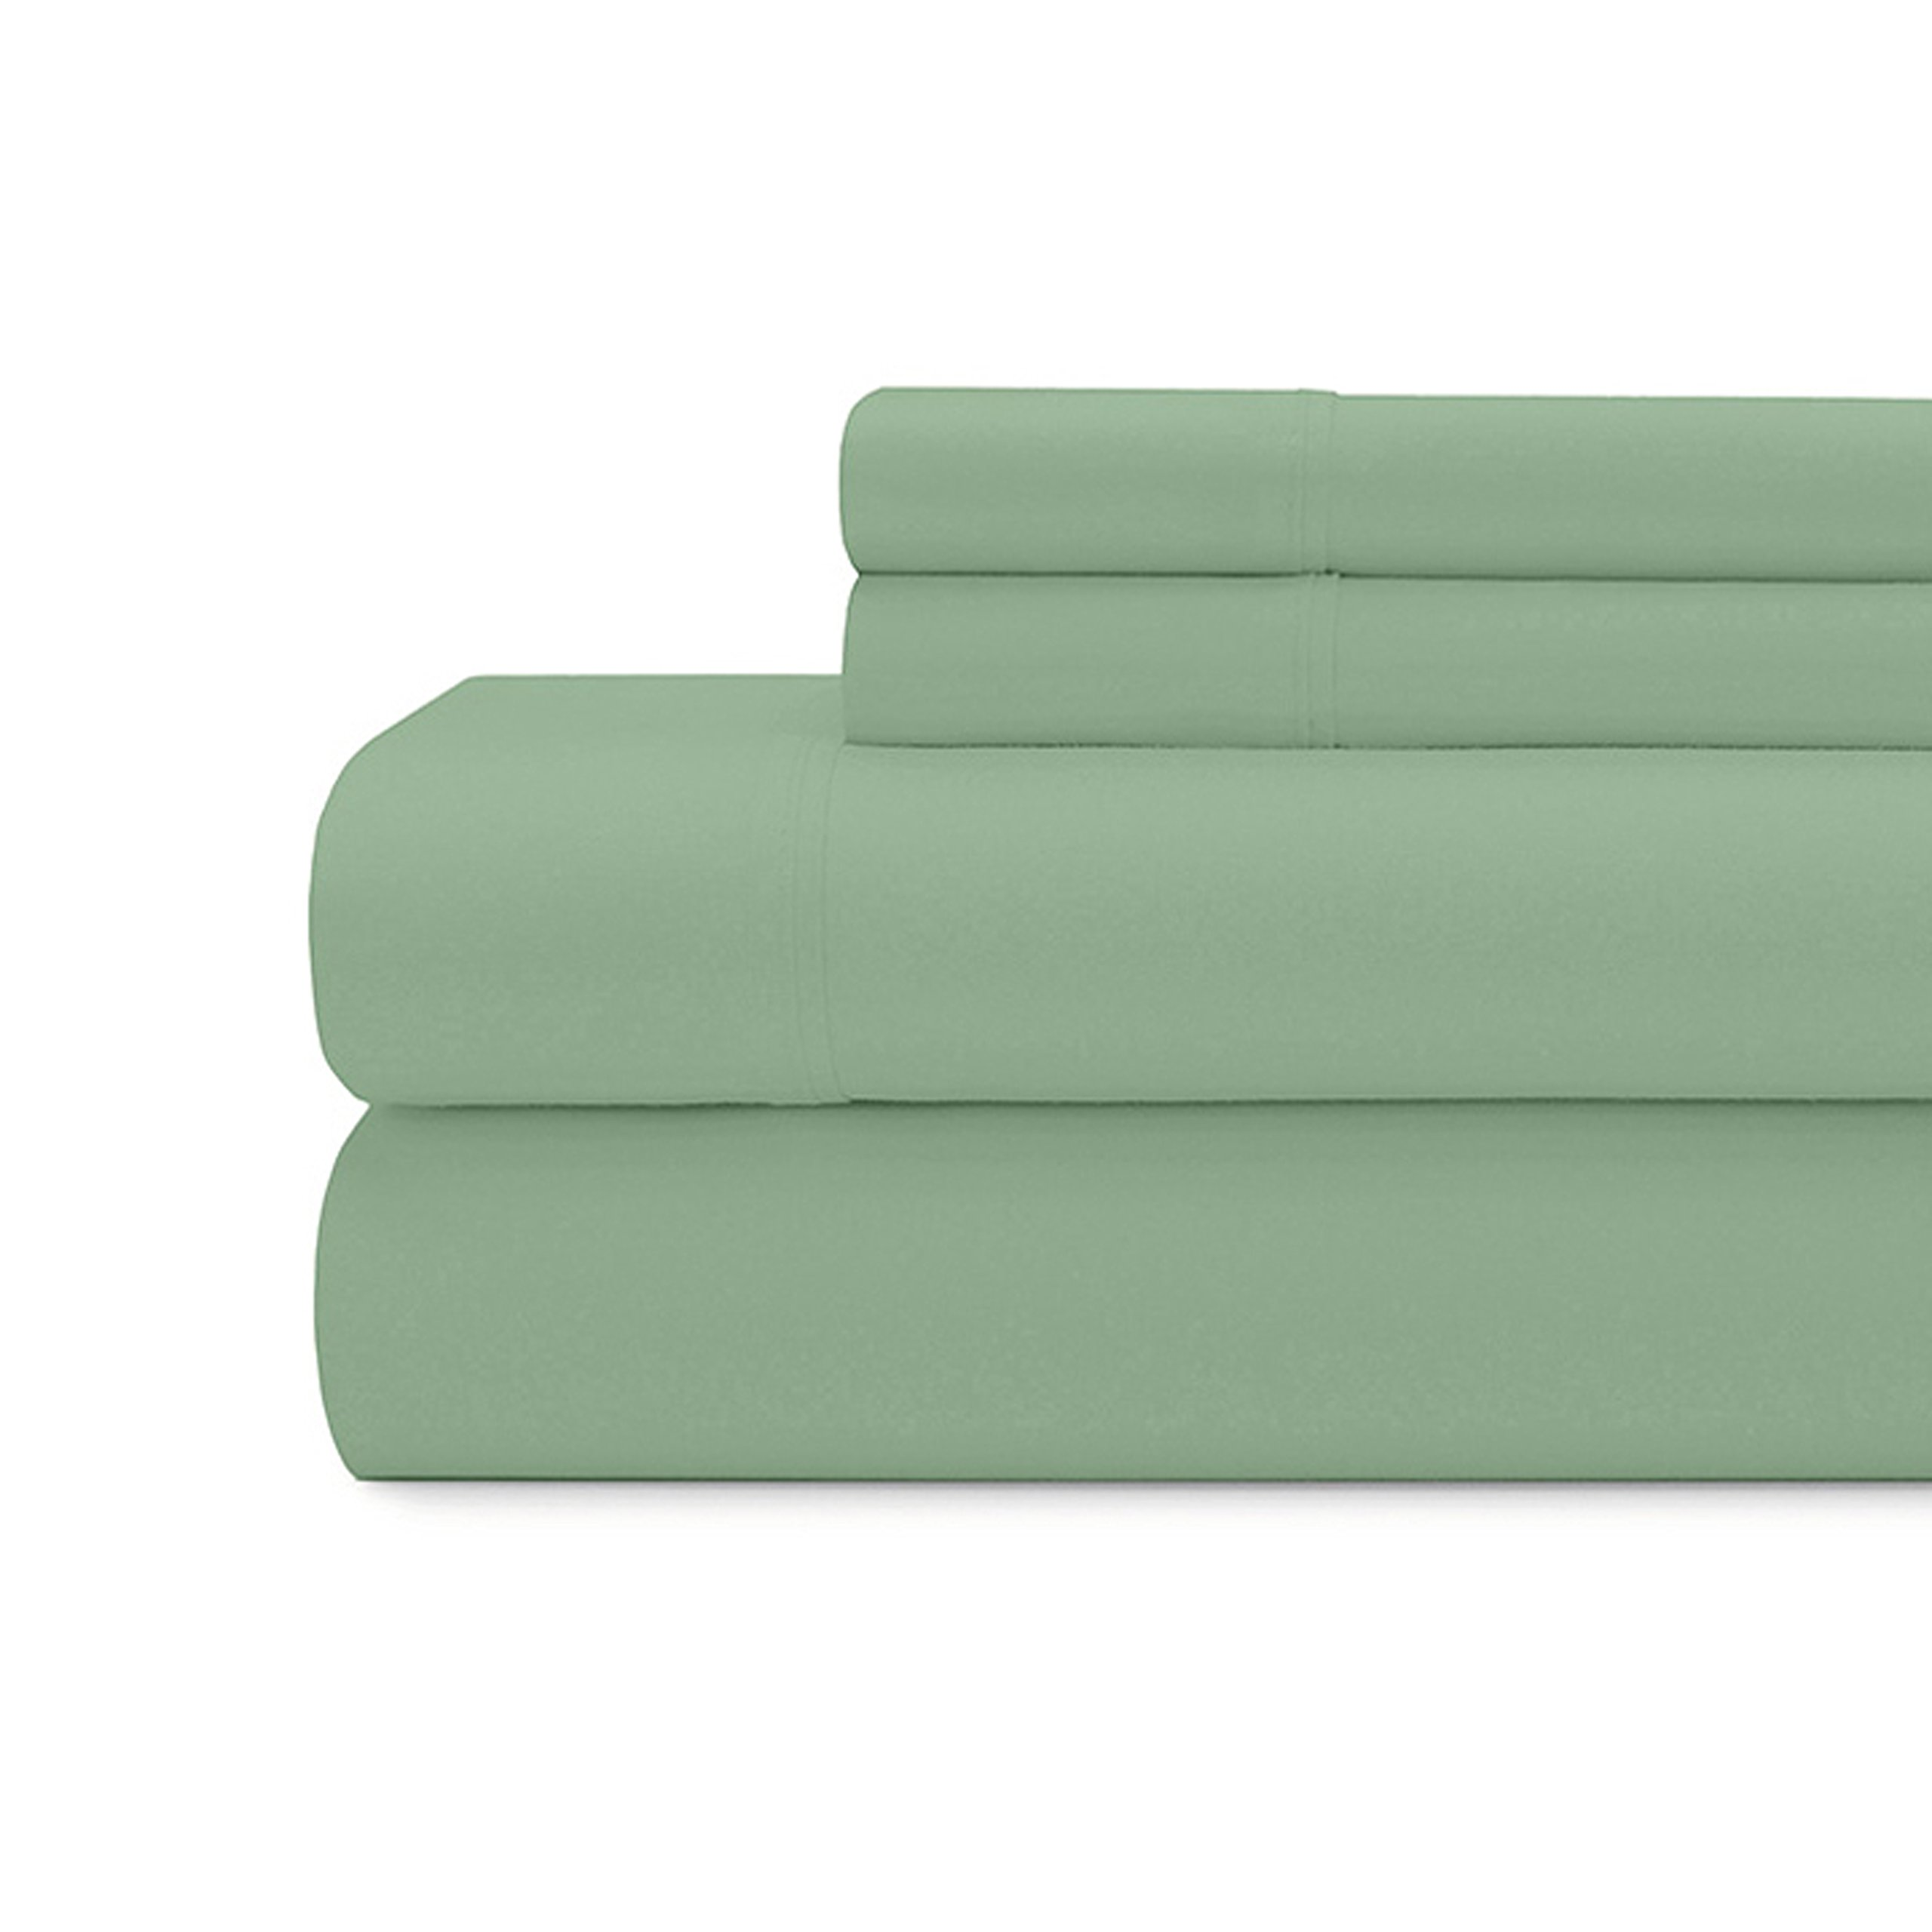 Briarwood Home 300 Thread Count Cotton Bed Sheet Set – 4 Piece Extra Soft Sateen Weave Sheets and Pillow Cases – Luxury Bedding with Deep Pocket Breathable Bedding (Queen, Sage Green)